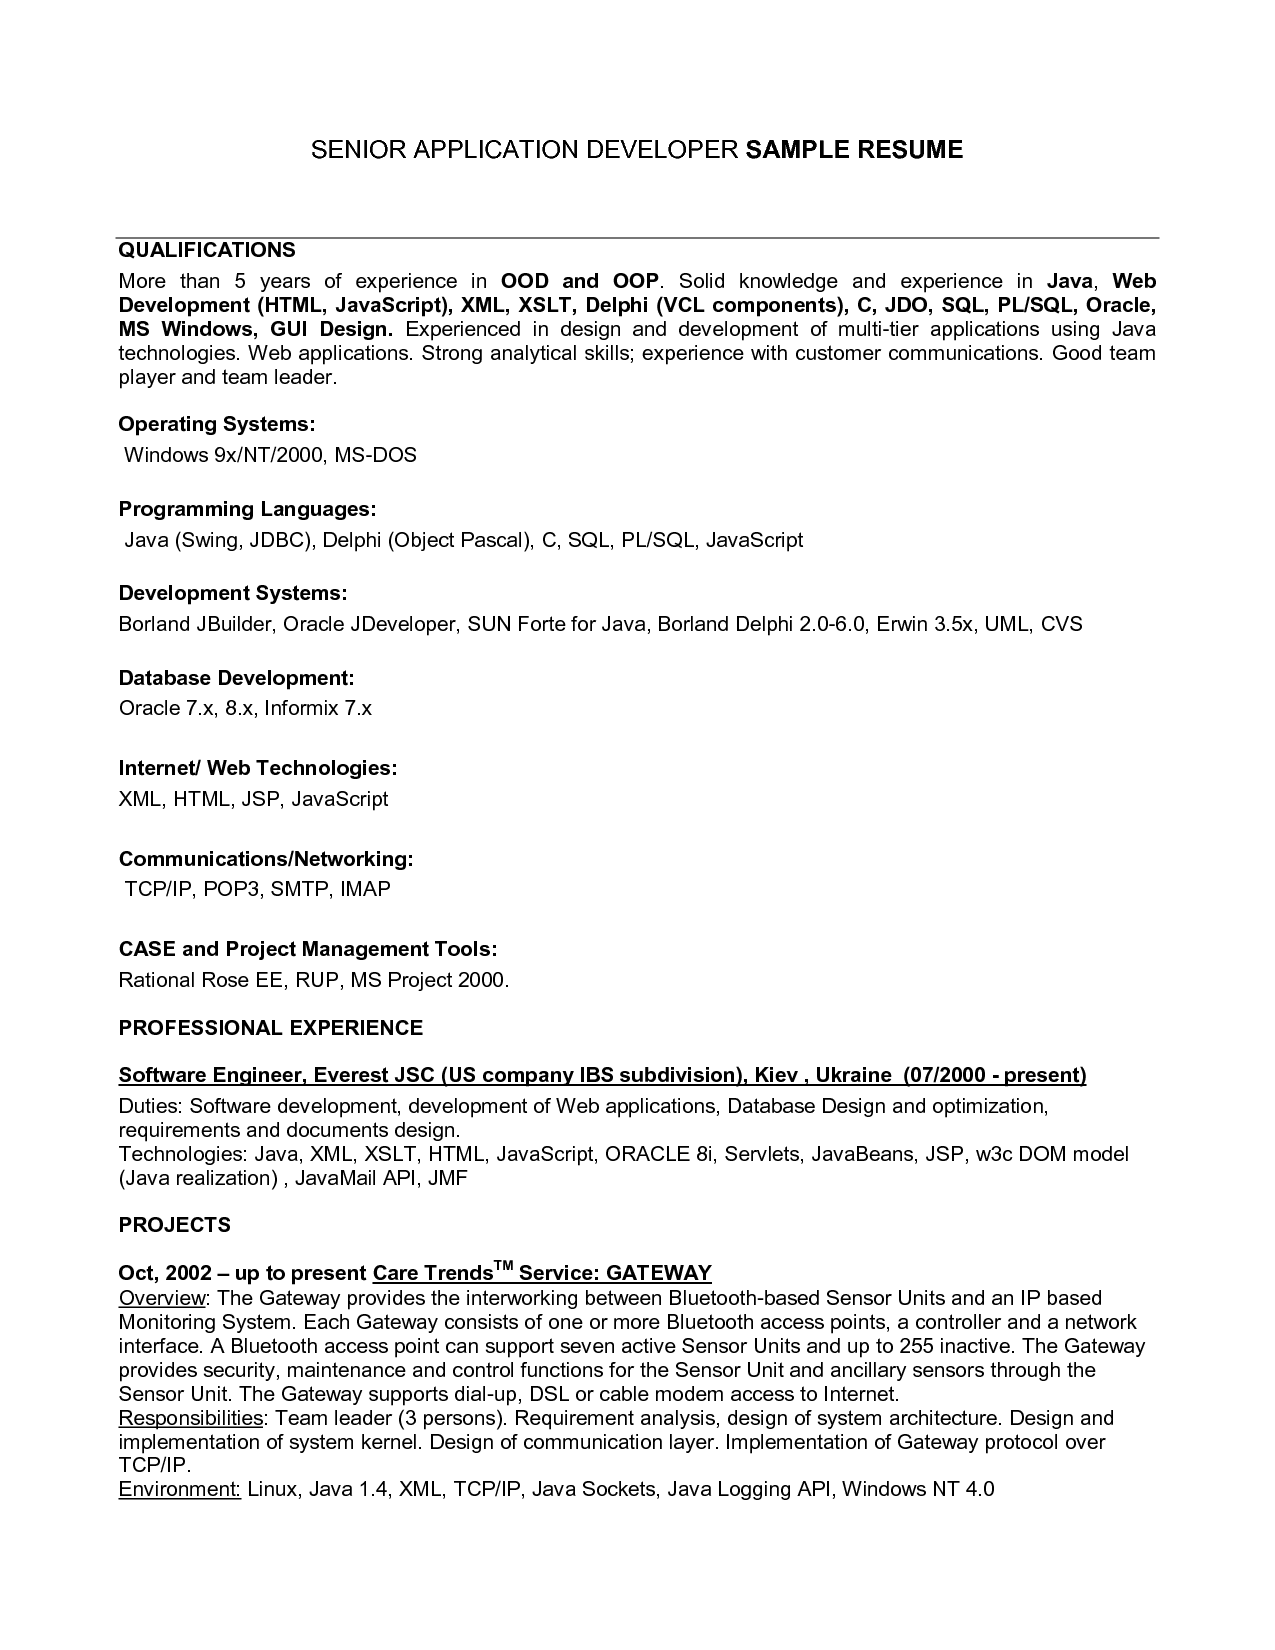 Resume Examples Qualifications - Resume Examples